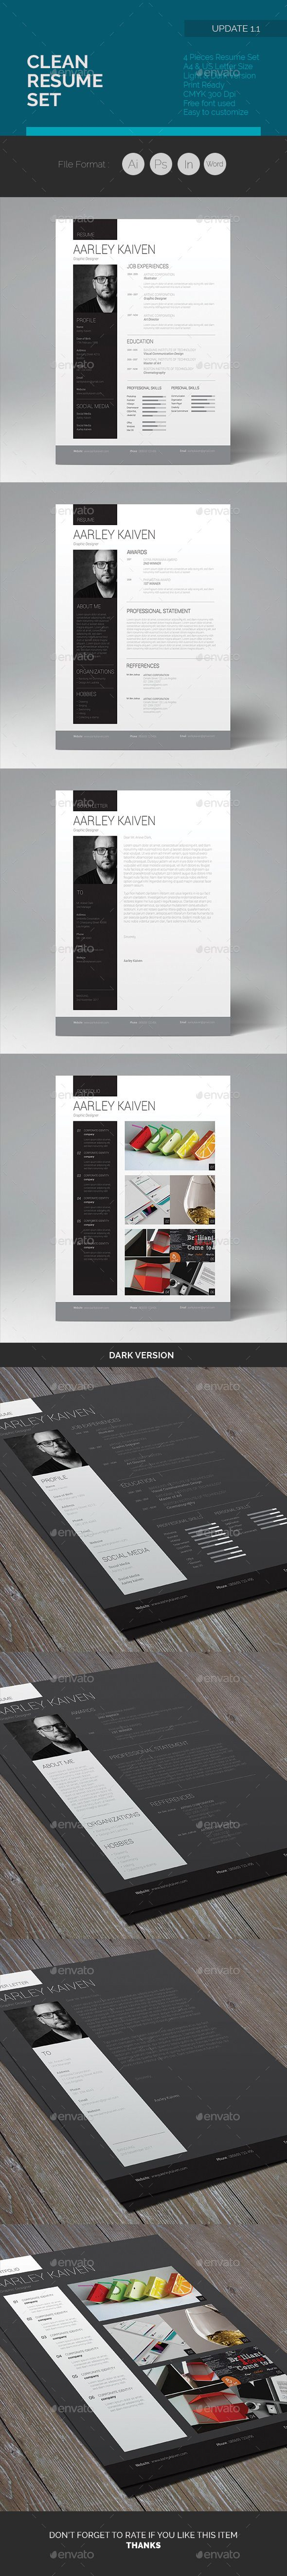 2 Resume designs, 1 Cover Letter & 1 Portfolio page. Available here : http://graphicriver.net/item/clean-resume-set/7565186?ref=pxcr